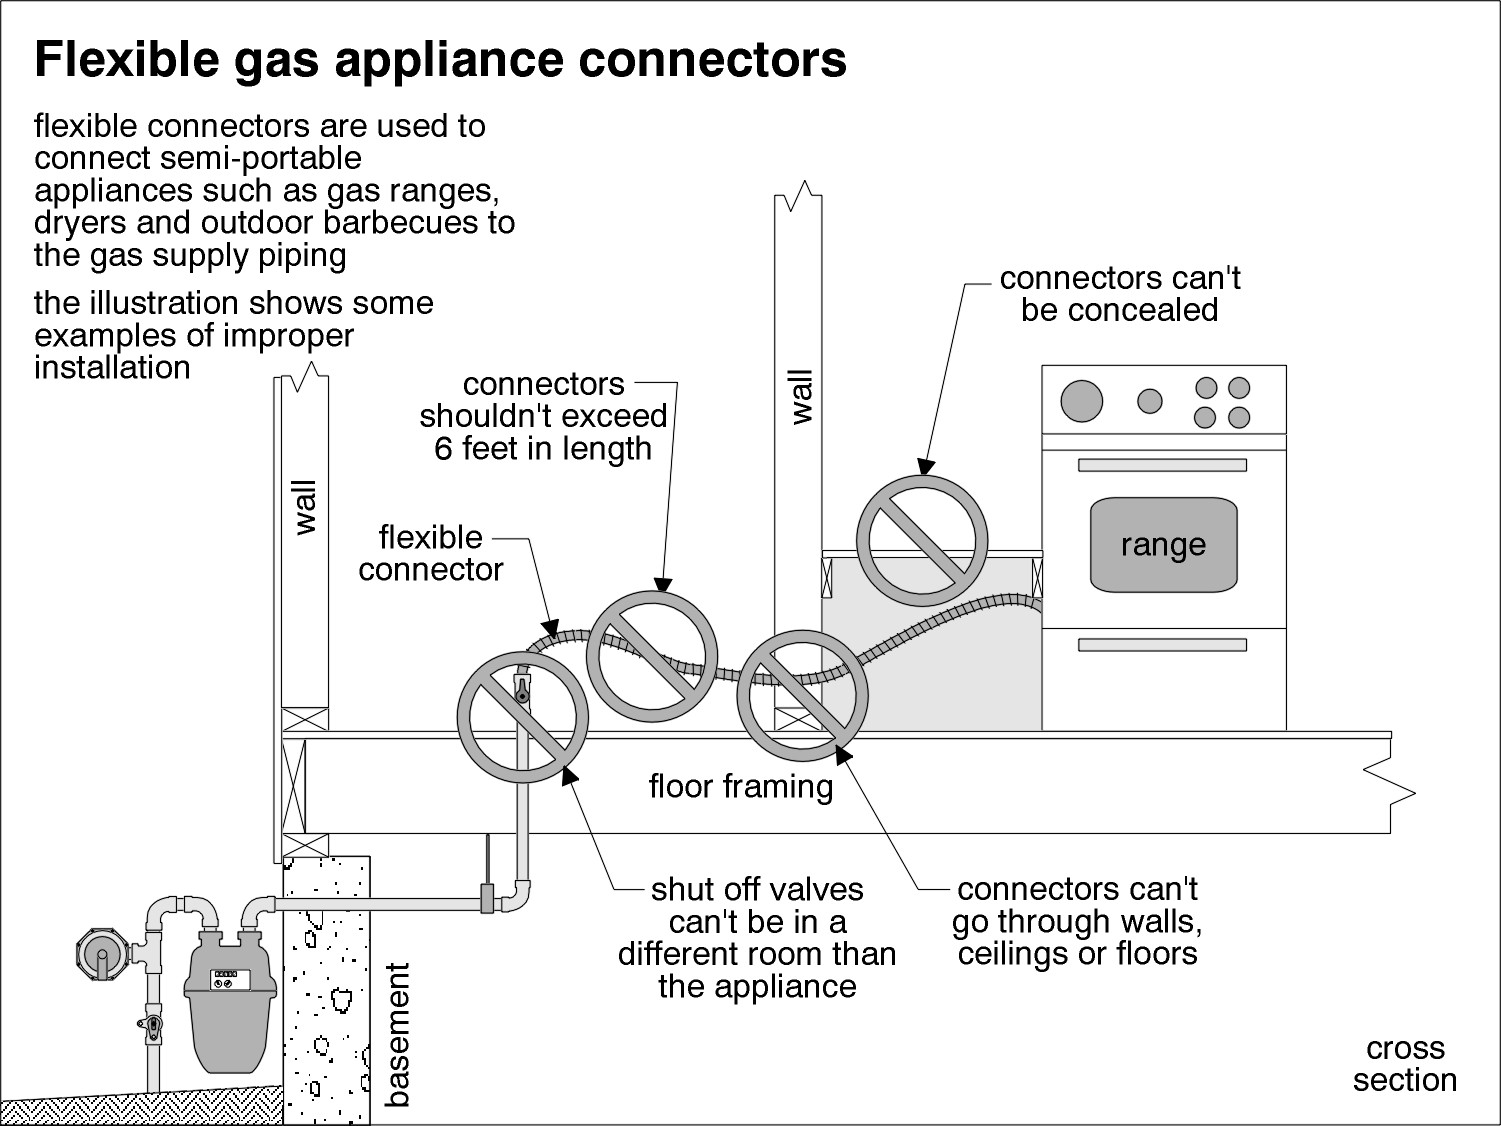 Electric Baseboard Wiring Diagrams 120 6feet Minneapolis Home Inspections Gas Appliance Connectors Connector Diagram